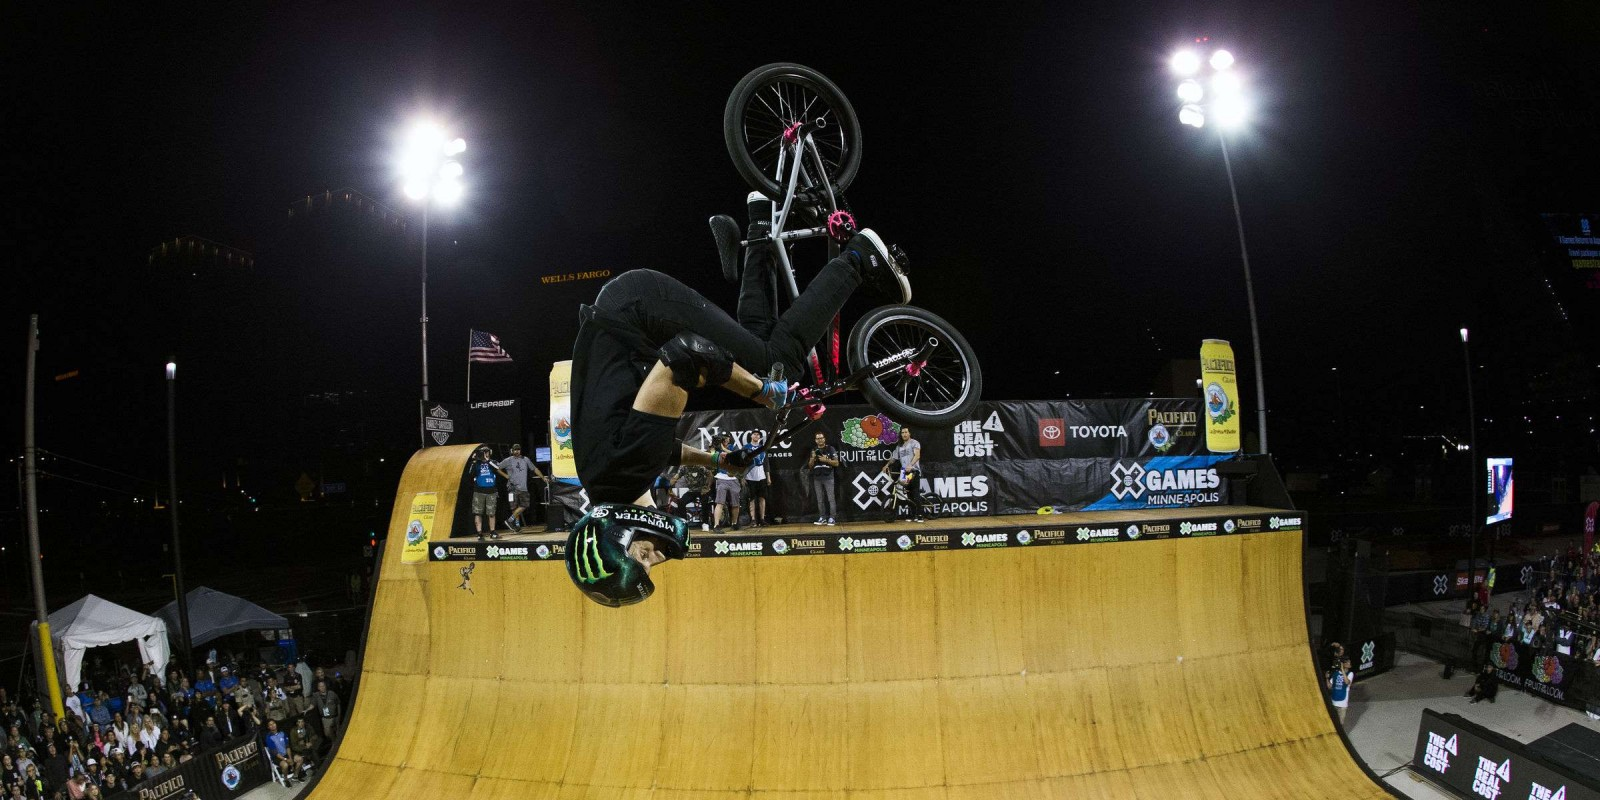 Shots of Jamie Bestwick at Summer X Games, Minneapolis